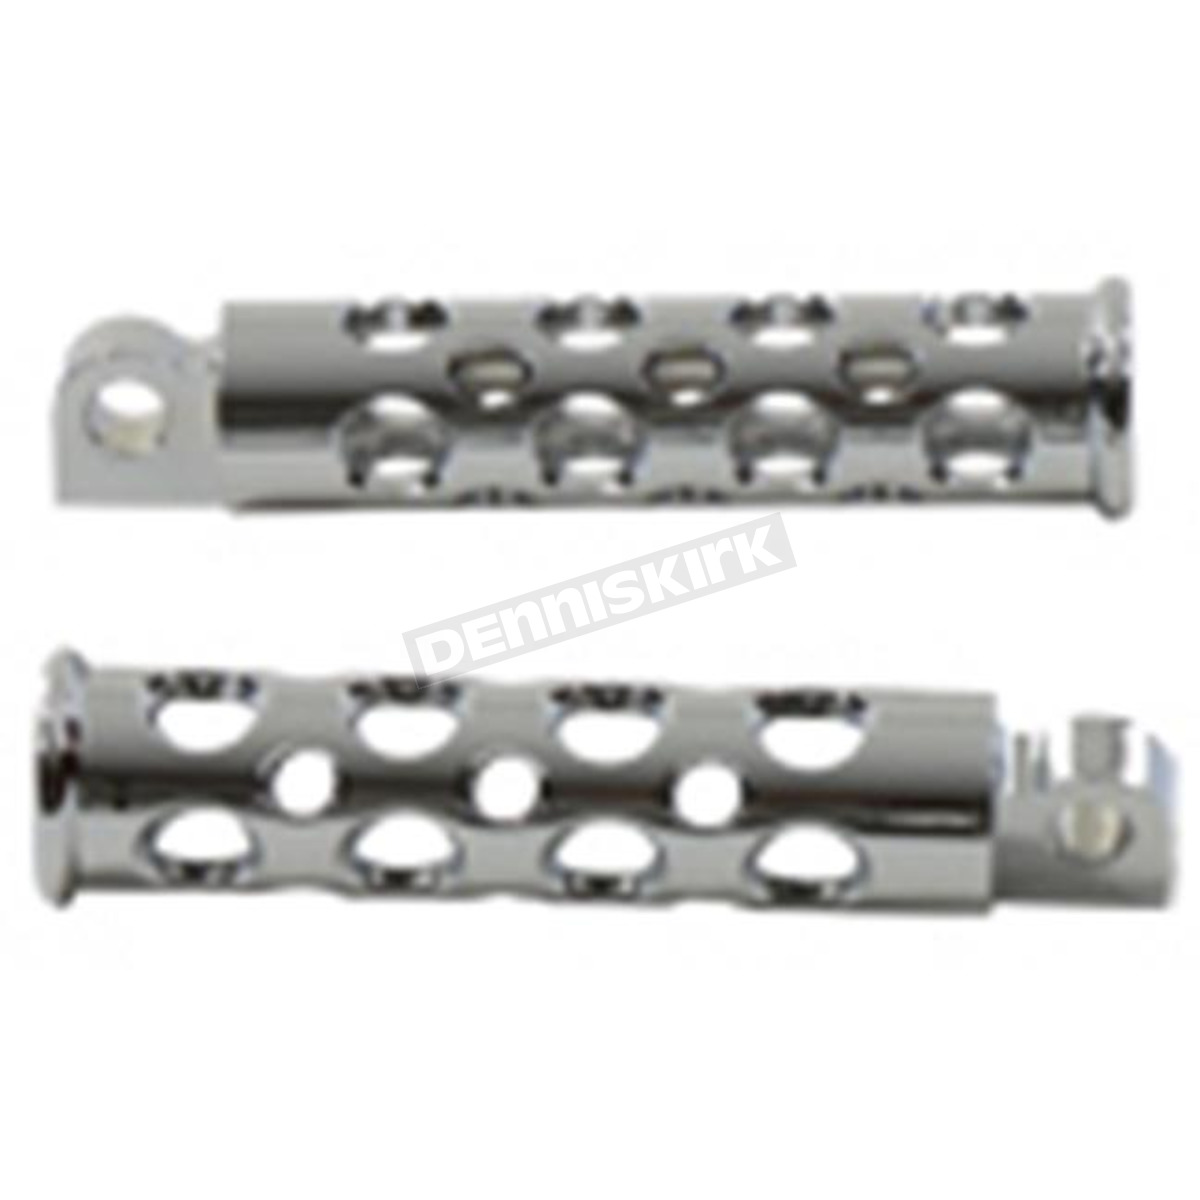 Billet Footpeg Set For Harley Davidson Motorcycles By V Twin Motorcycle Footrests Pedals Pegs Auto Parts And Vehicles Nuntiusbrokers Com